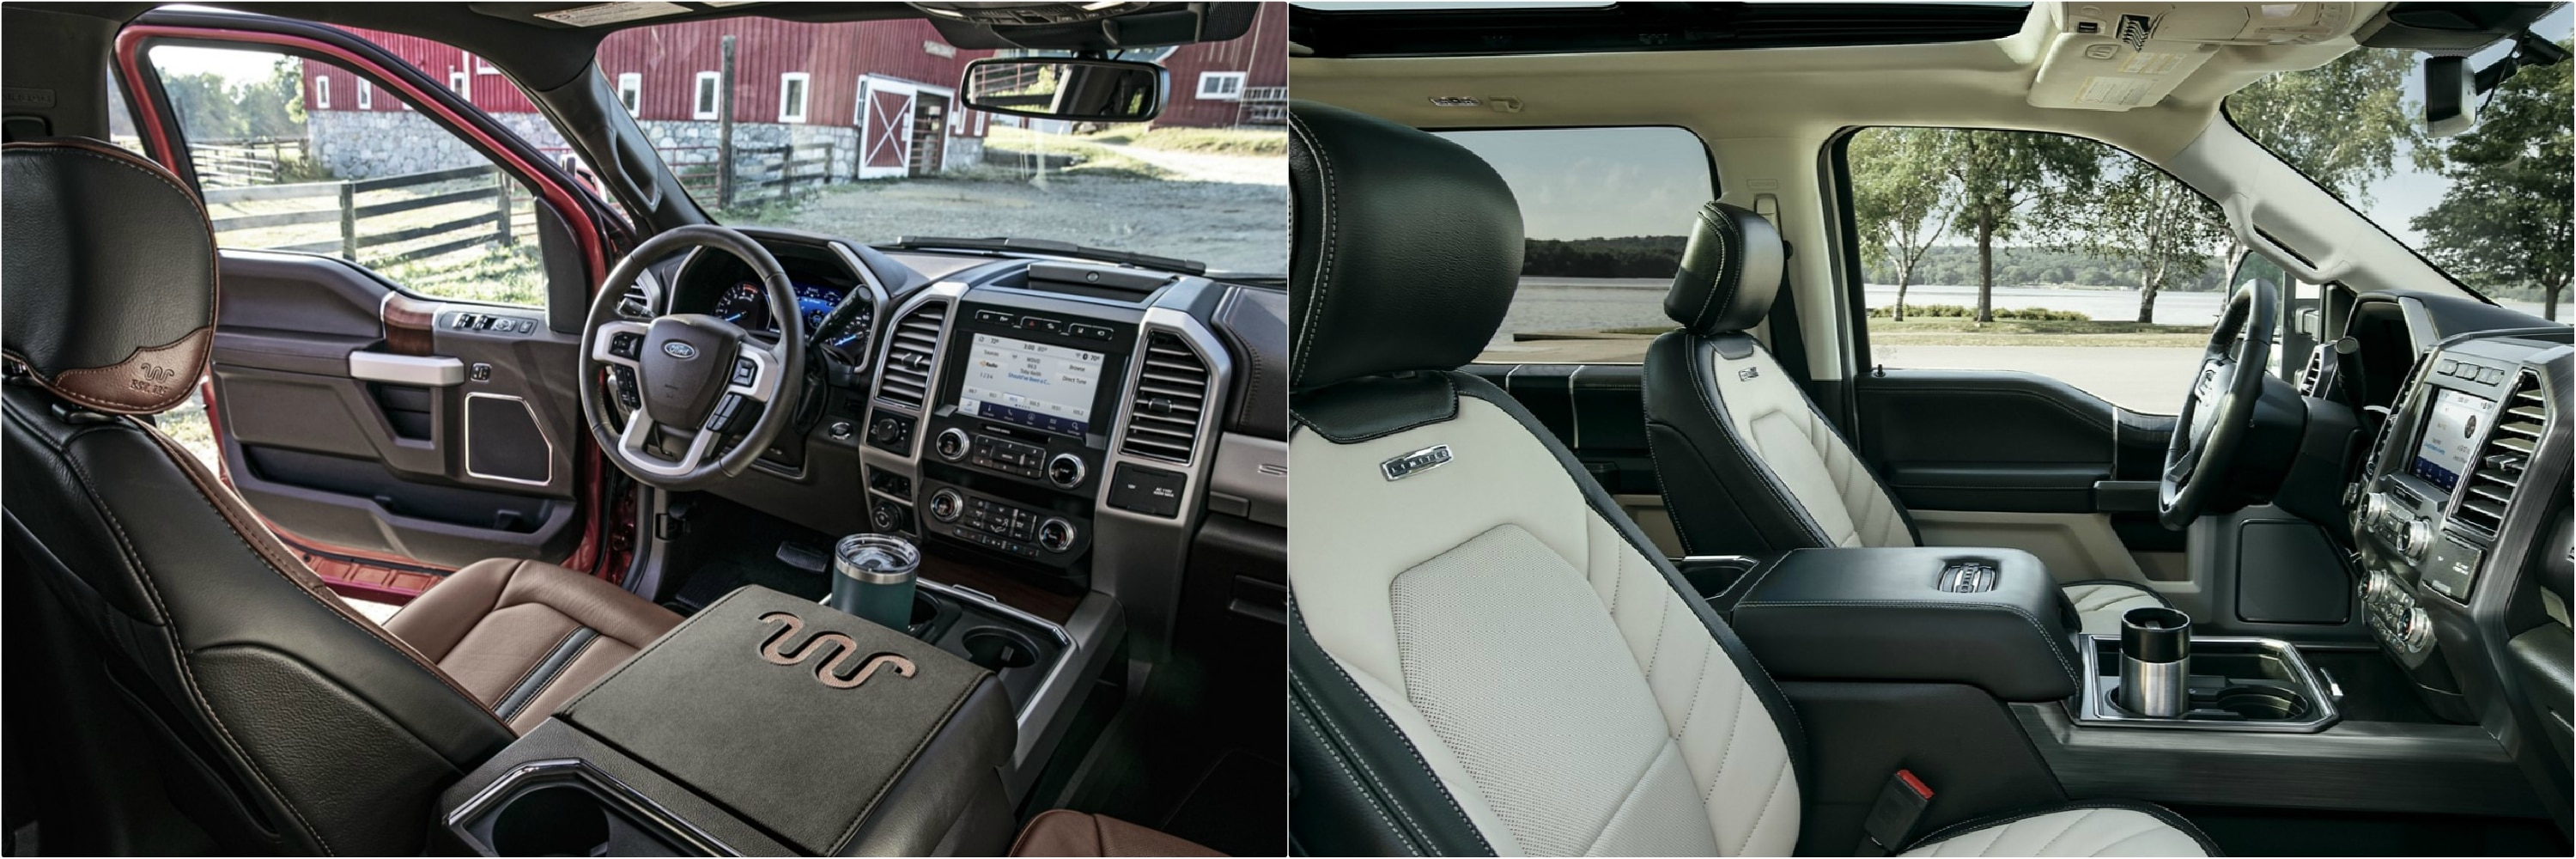 interior seating comparison of a 2021 and 2020 Ford Super Duty